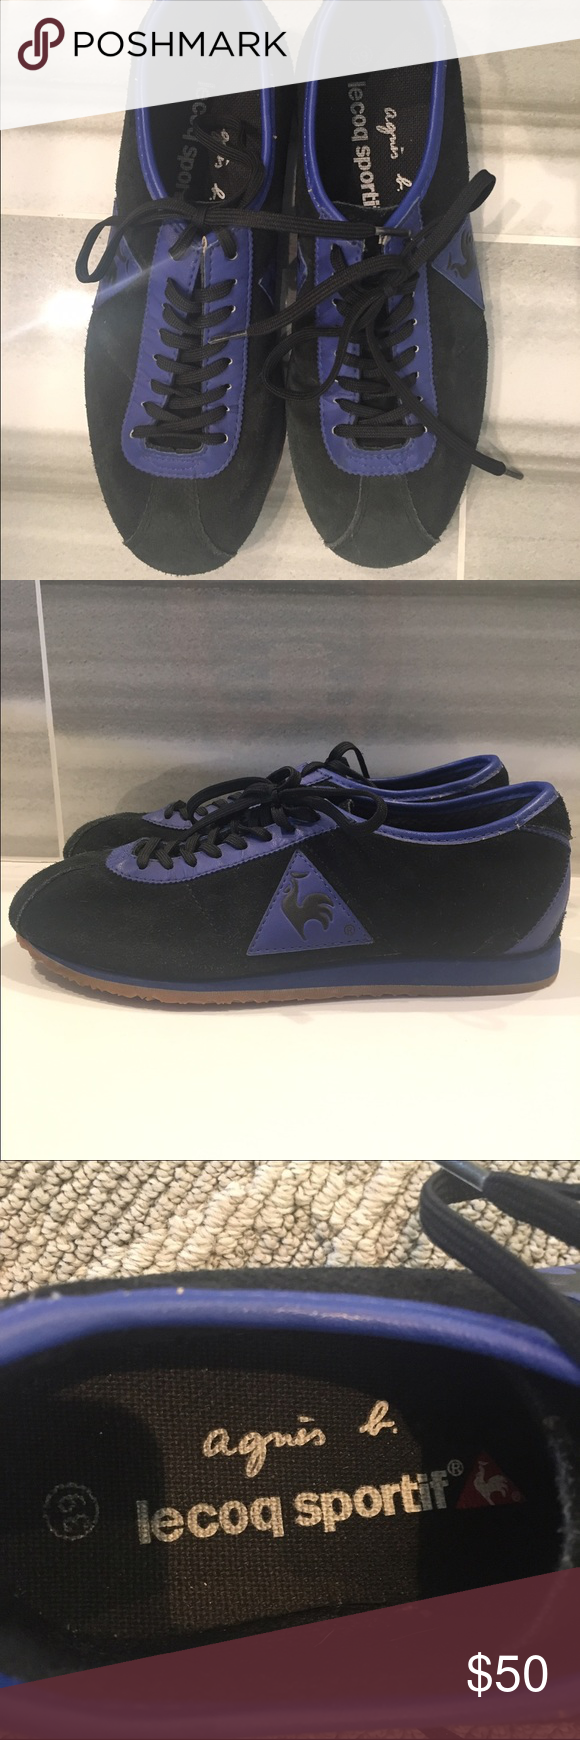 Agnes B Le coq sportiff sneakers. Rare black and purple suede sneakers bought at Agnes B in San Francisco.  Loved but lots of life left, soles in great condition.  Note leather cracking around heel (see photo).  Great chance to own some unusual retro kicks!  Note:  says 39 but fits like 8 maybe 8.5 Agnes B Shoes Sneakers